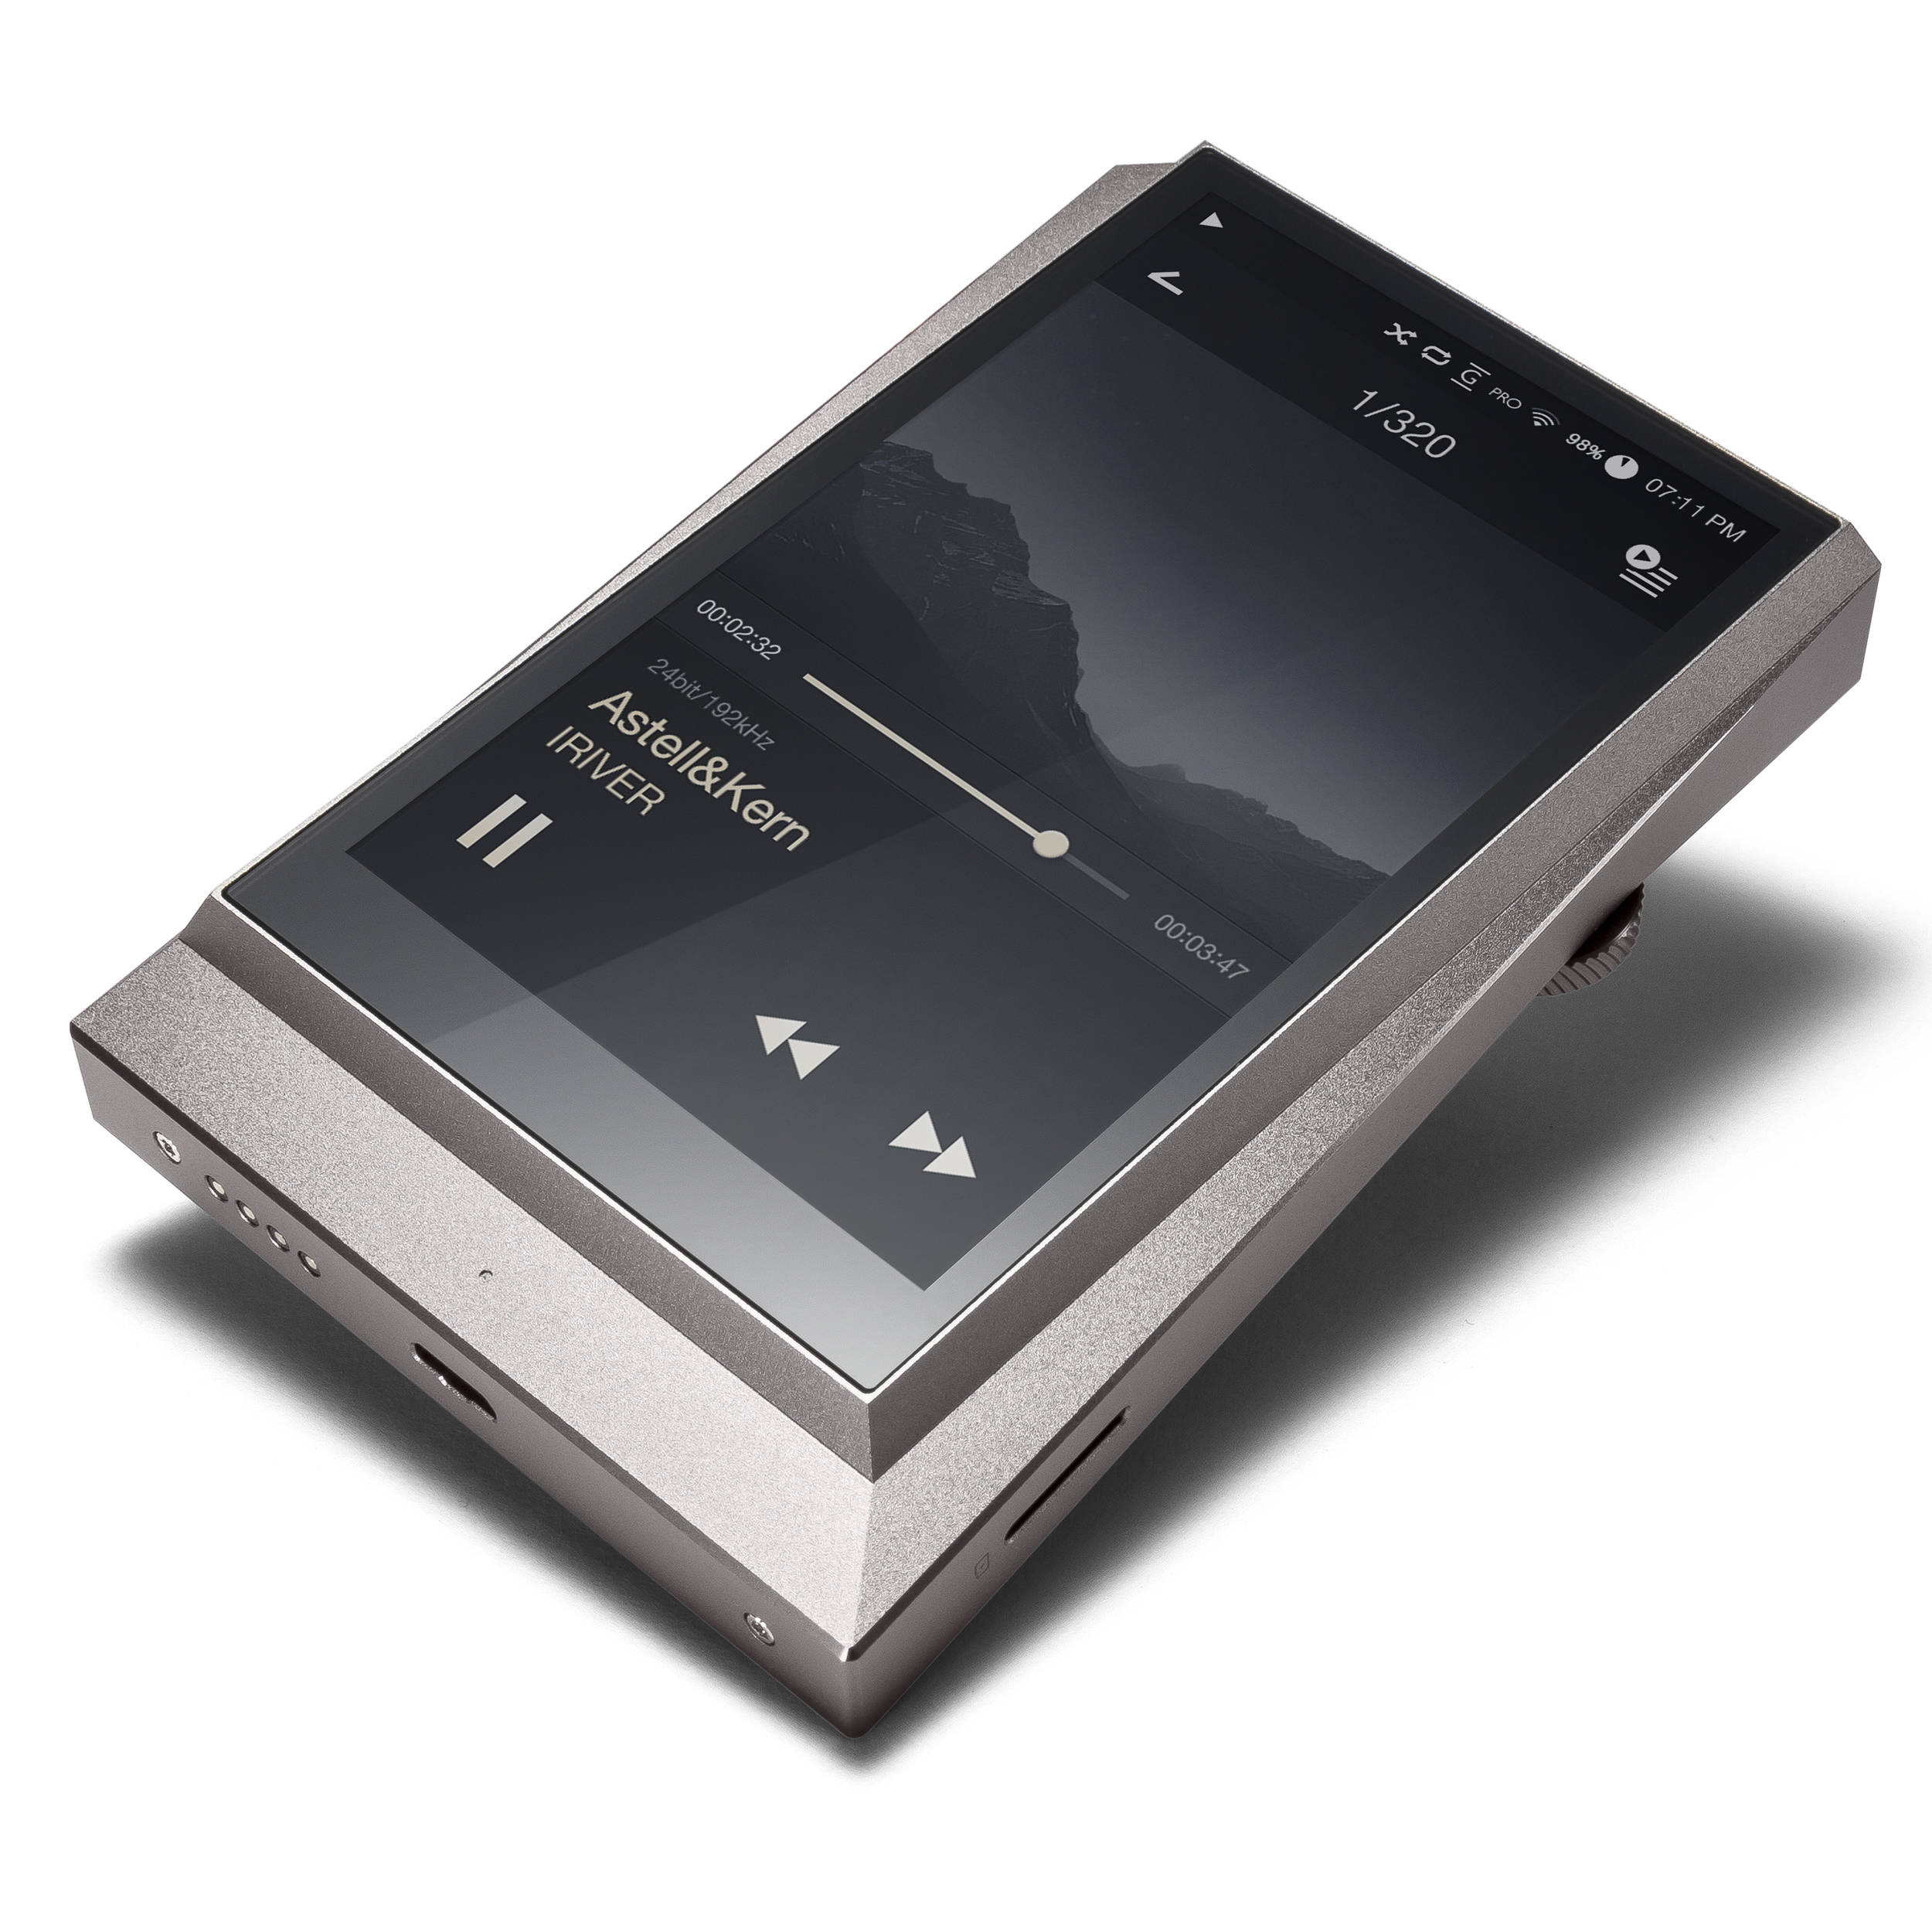 Astell kern ak320 portable hi fi audio system 3ppm318c cmgmn1 for Mobile porta hi fi